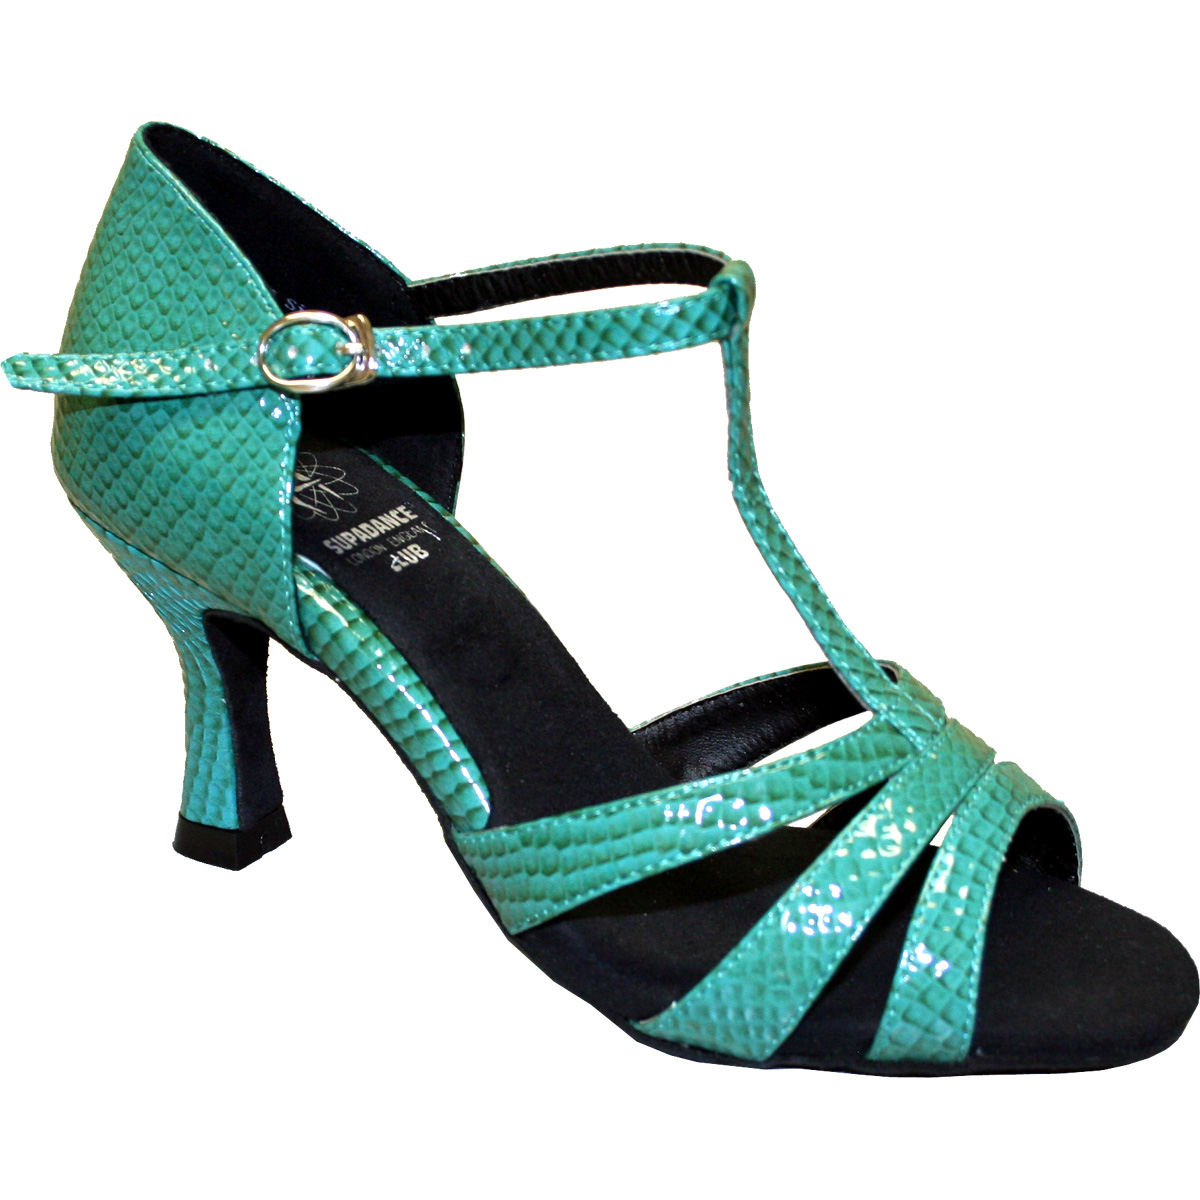 7831 - Ladies' Sandal Dance Club Teal Snake